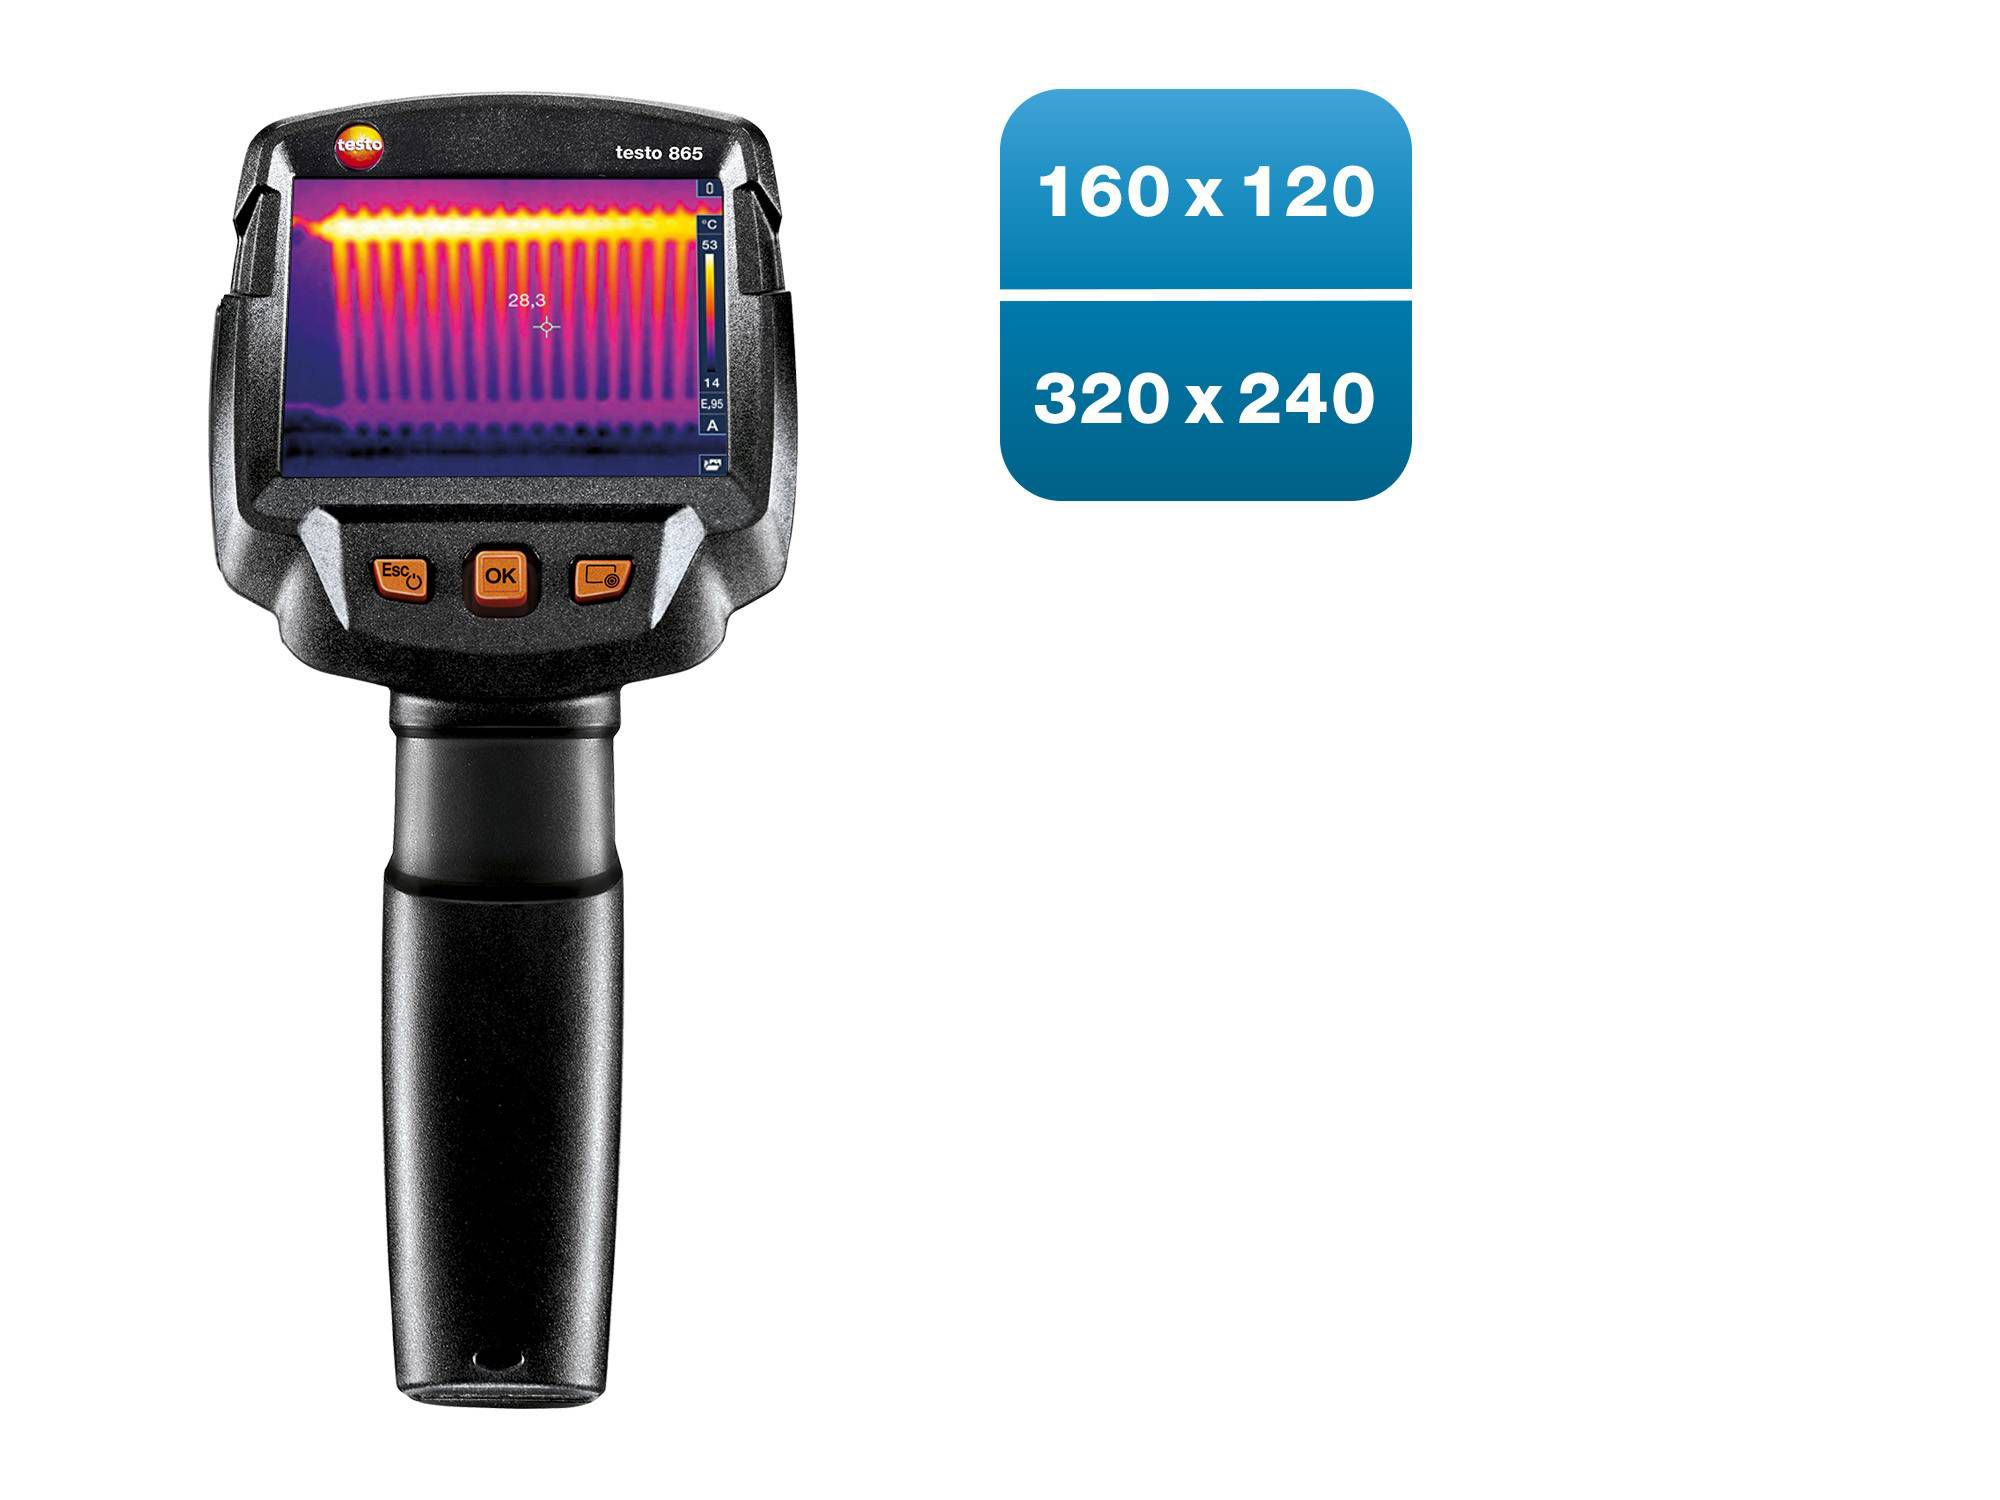 testo865: Switch on, point, know more.